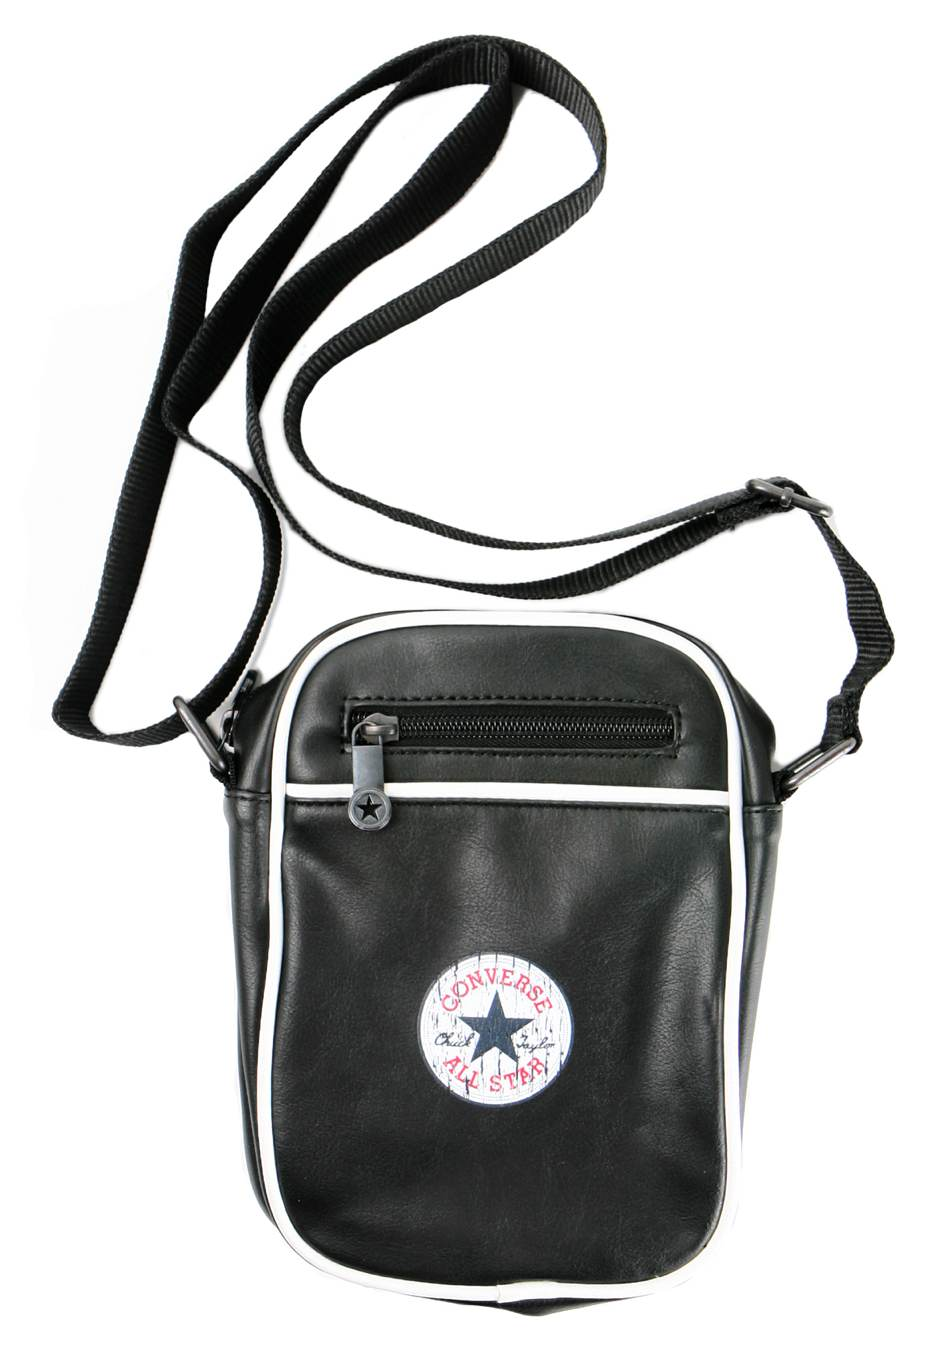 4c8079ed93e5 converse shoulder bag Sale